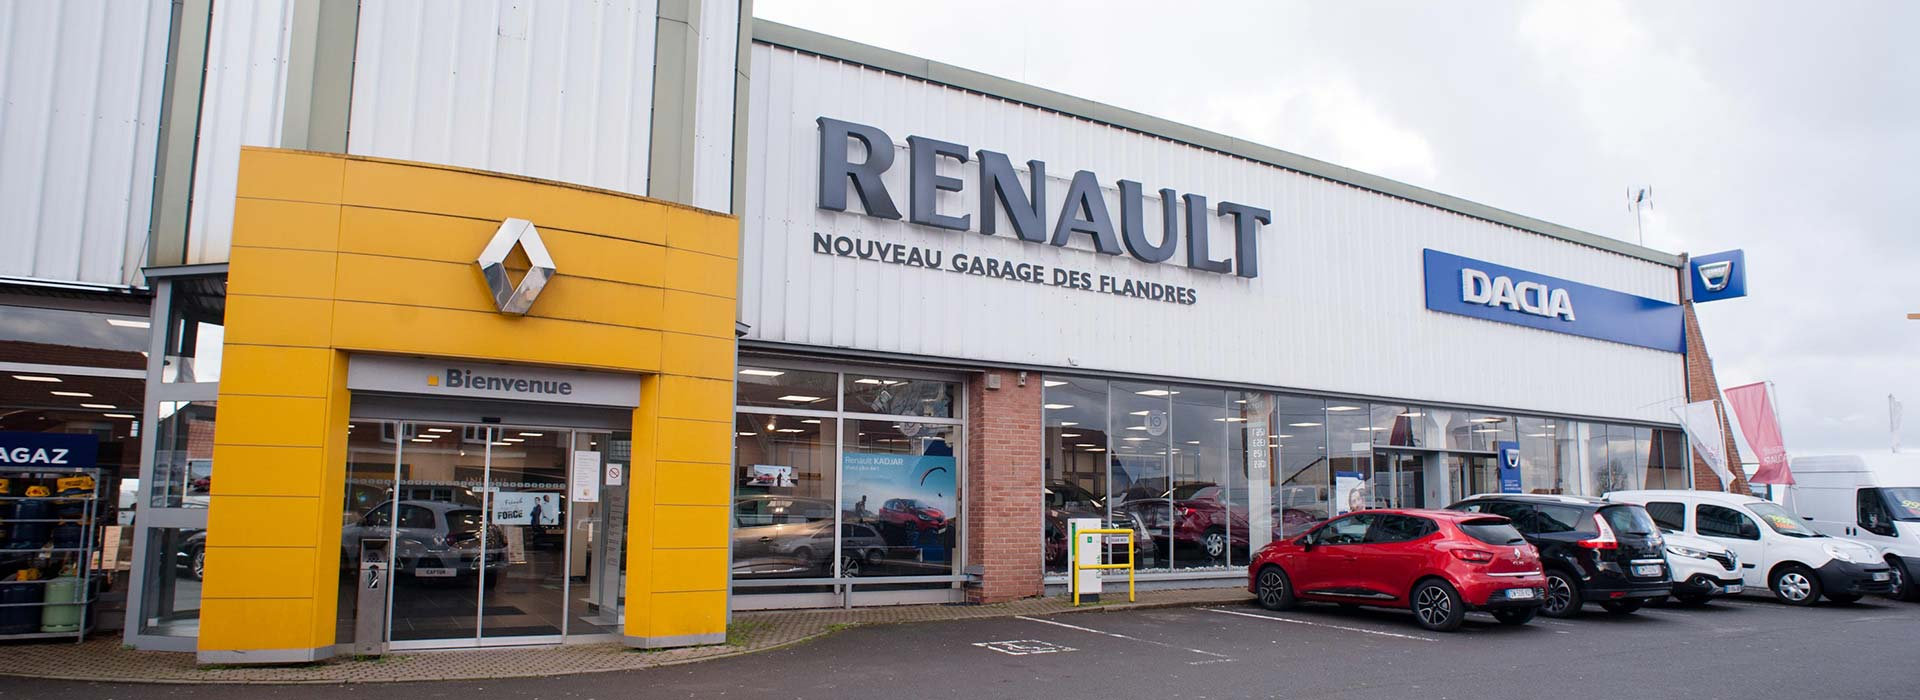 renault dunkerque concessionnaire garage nord 59. Black Bedroom Furniture Sets. Home Design Ideas